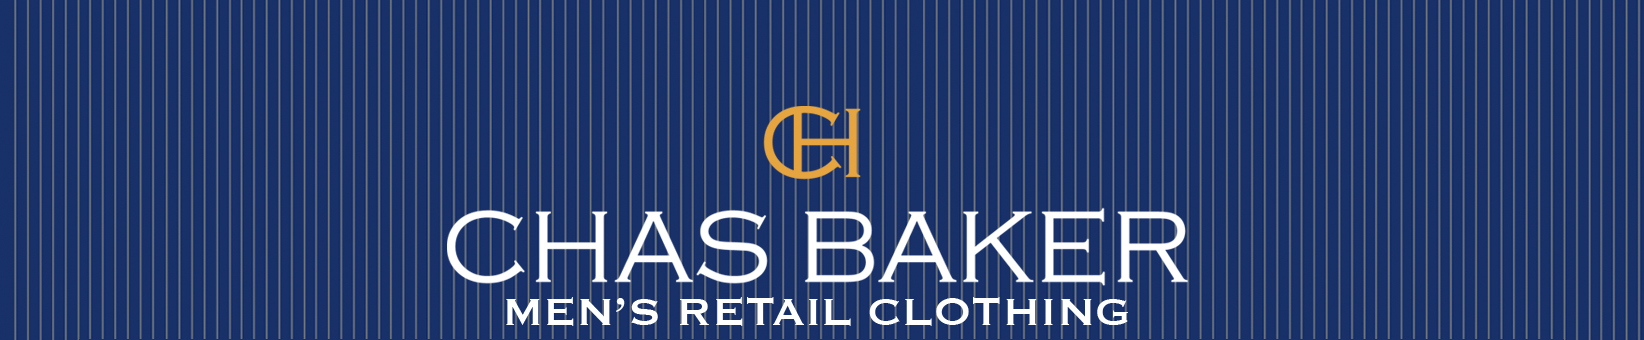 Chas baker classic and contemporary menswear